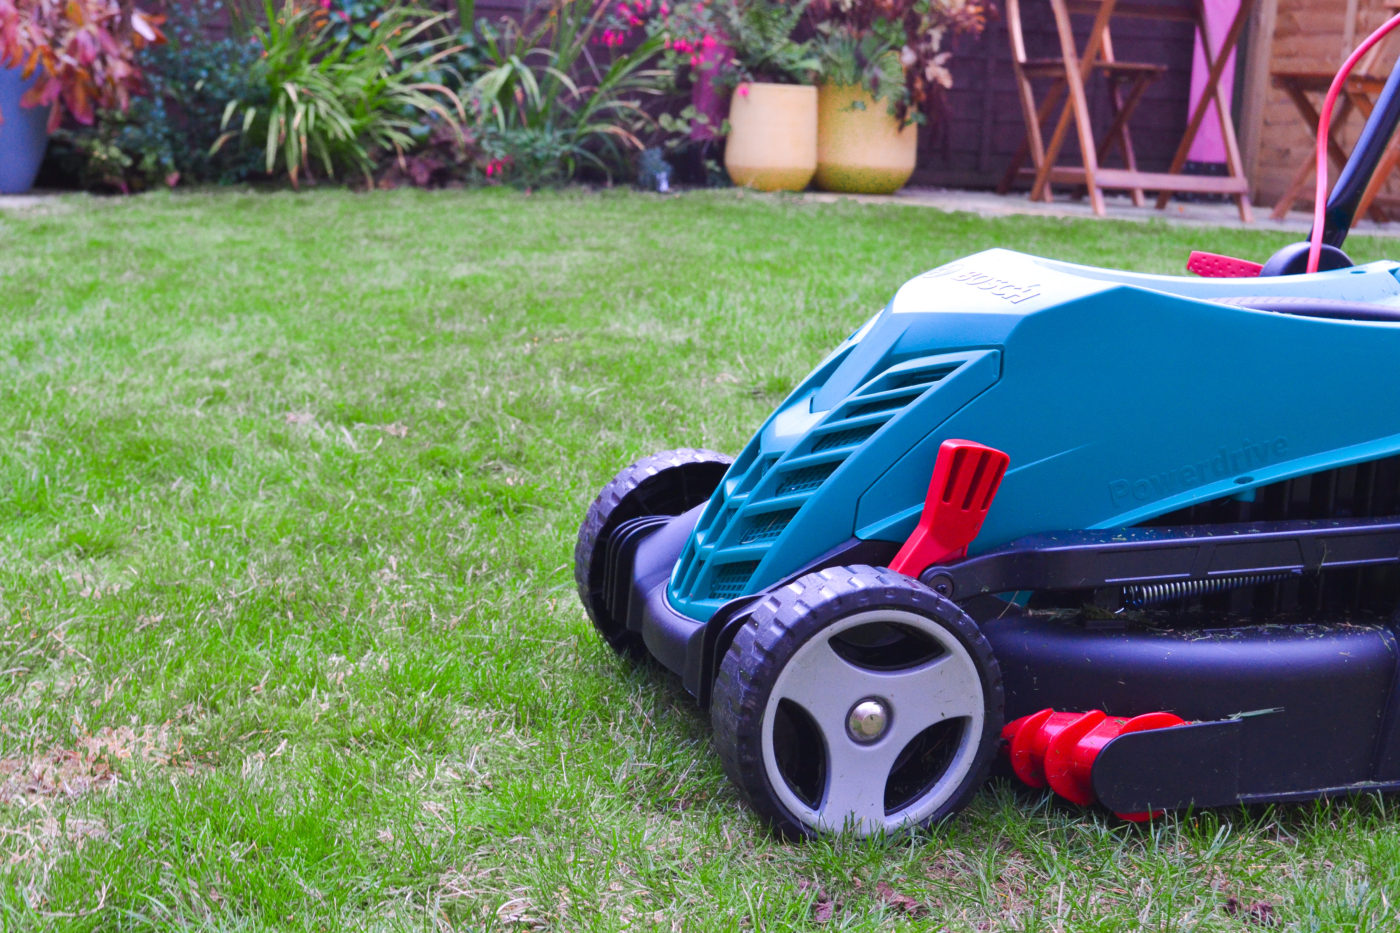 Bosch lawnmower review